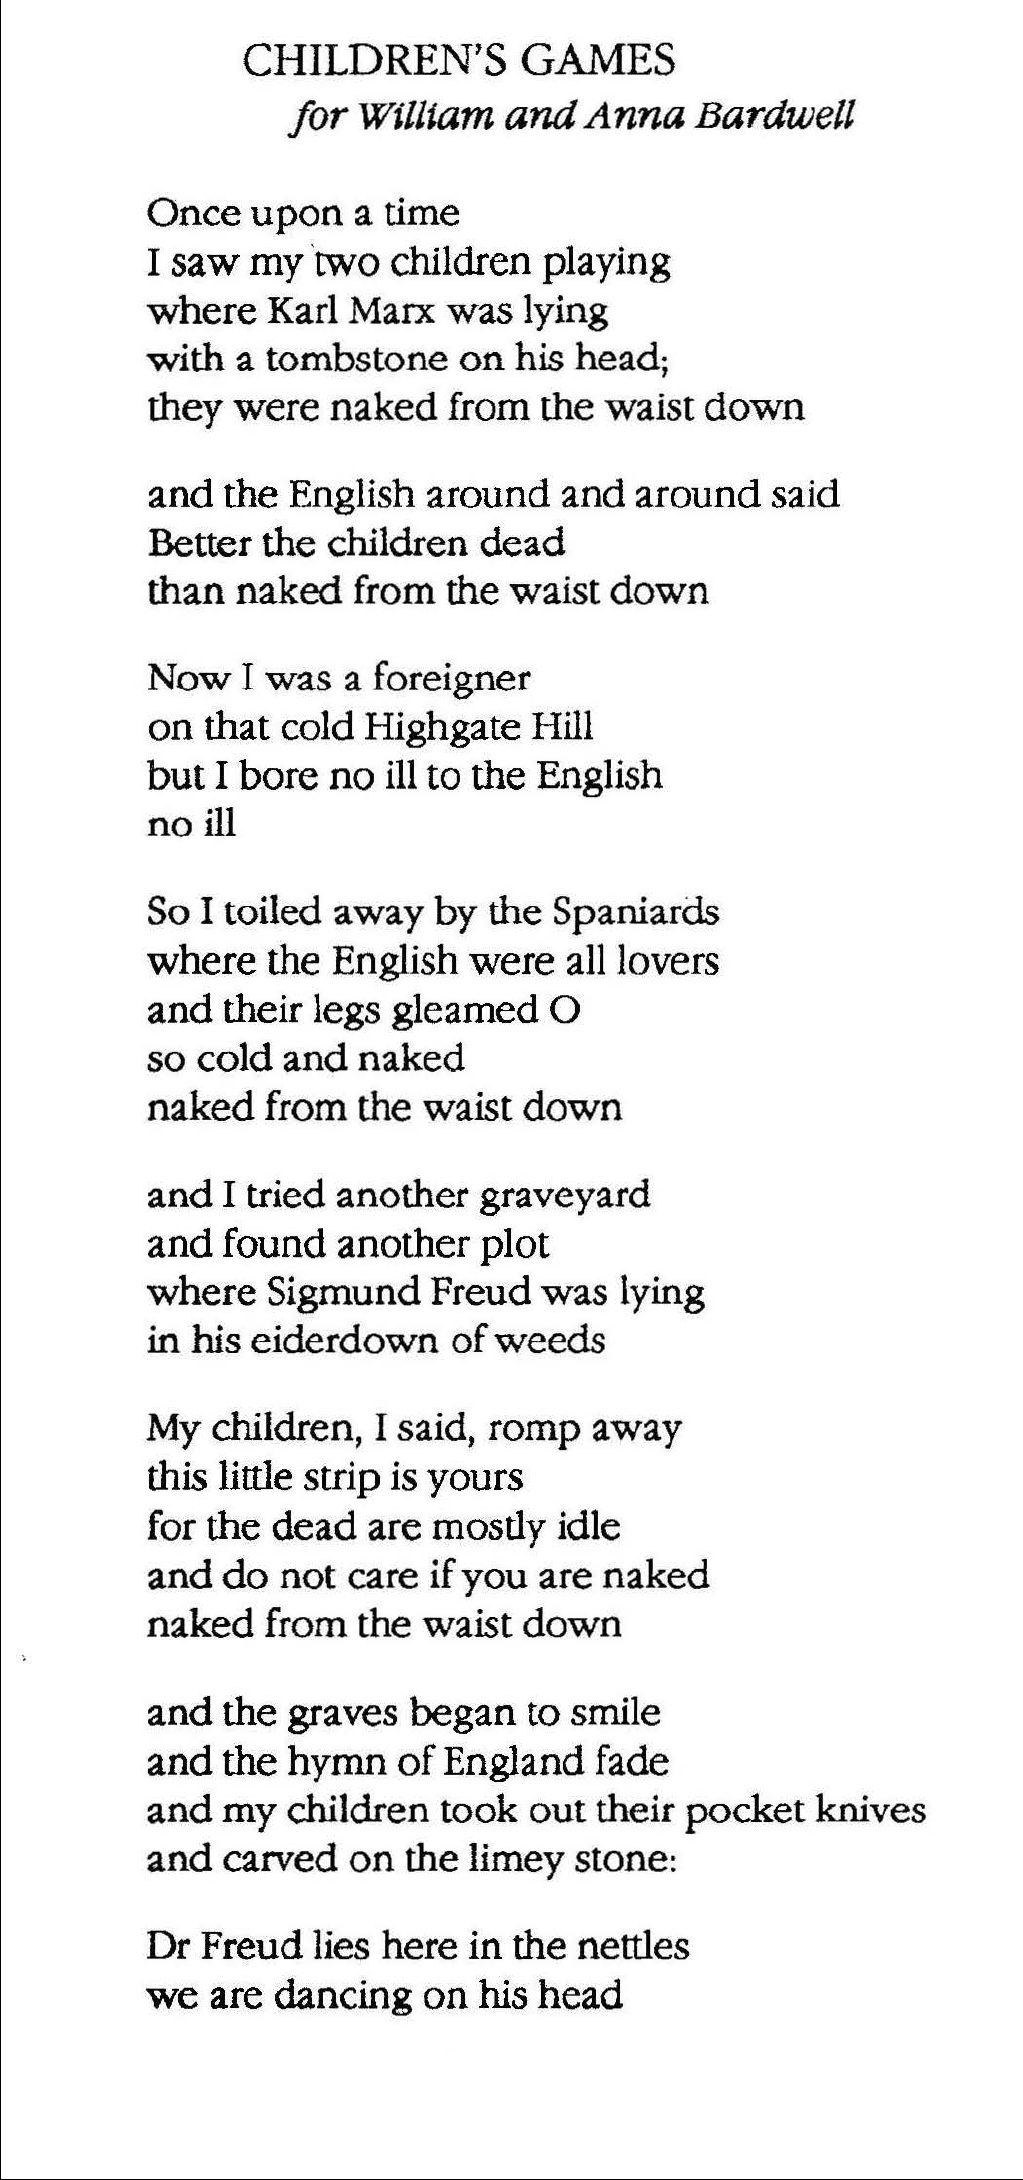 Copy-write Leland Bardwell / Dedalus Press. Click on poem to see Leland Bardwell titles available through Dedalus Press.